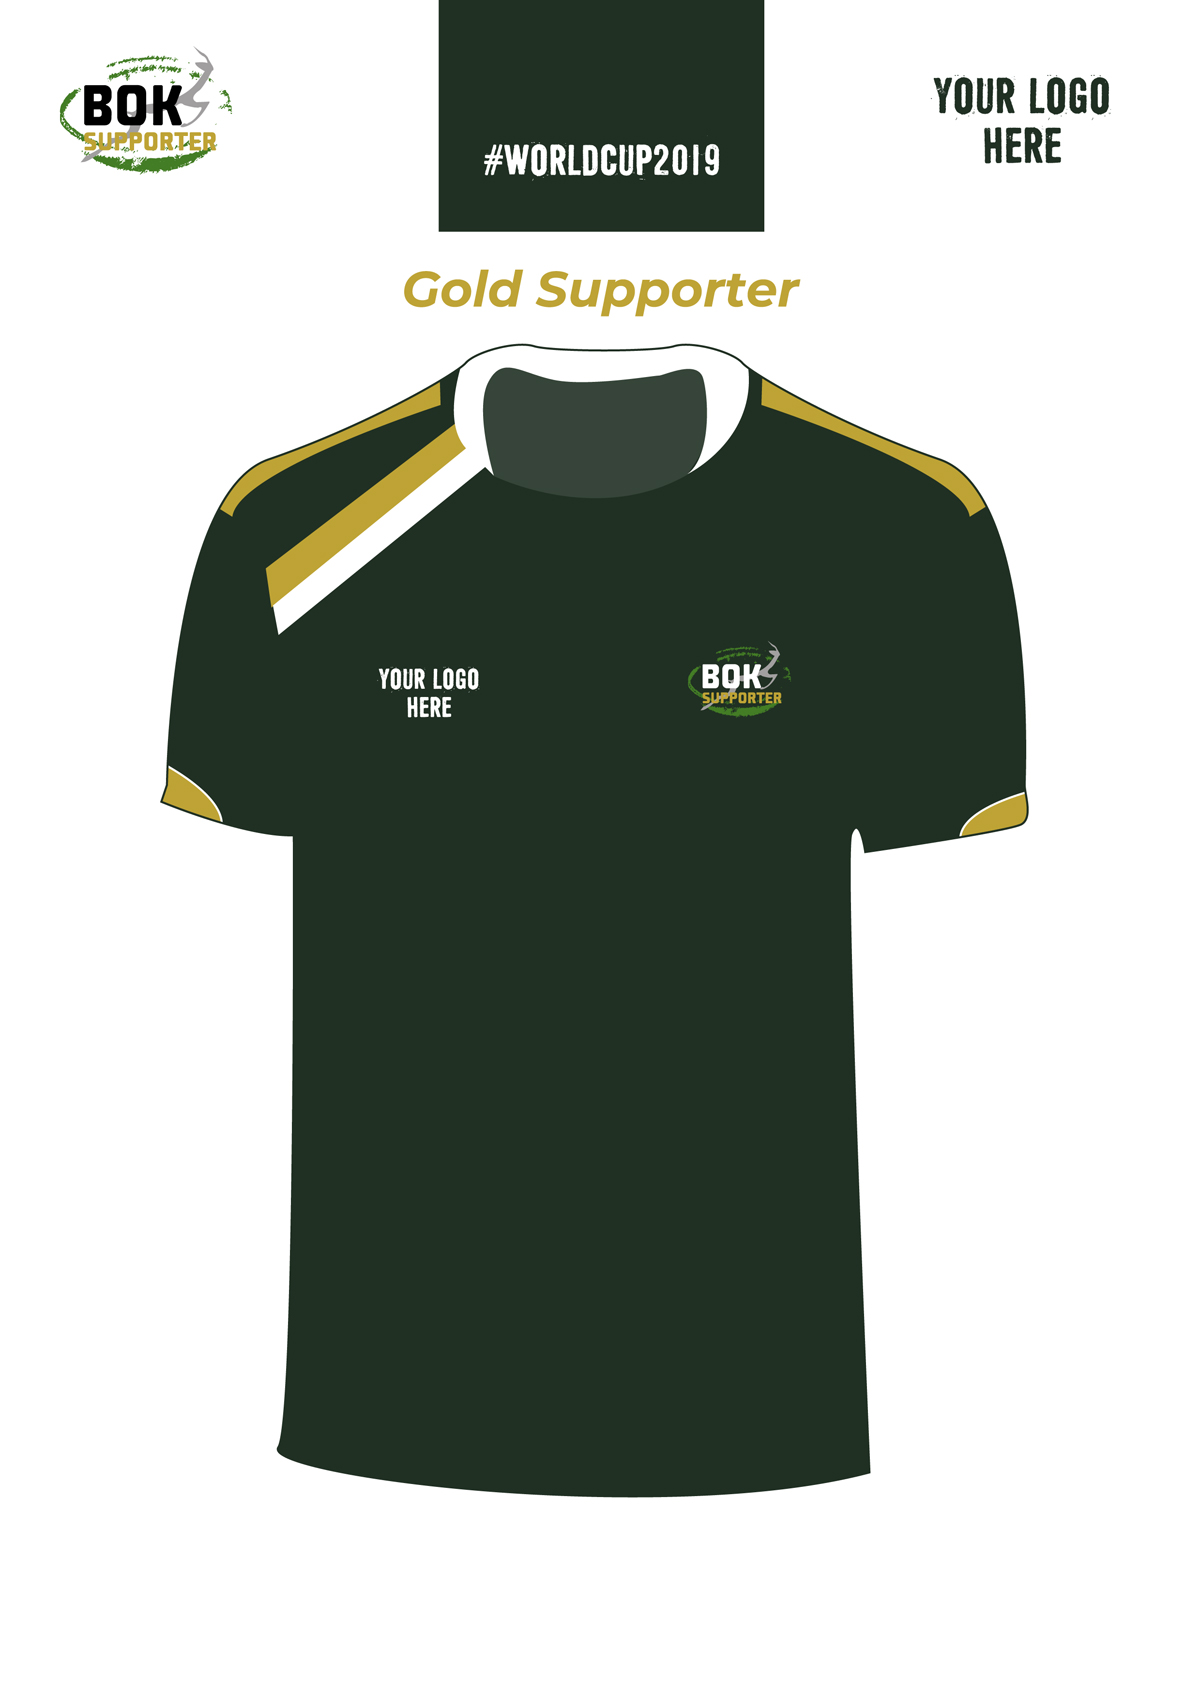 Bok Supporter Synergy Gold Unisex Sport Shirt